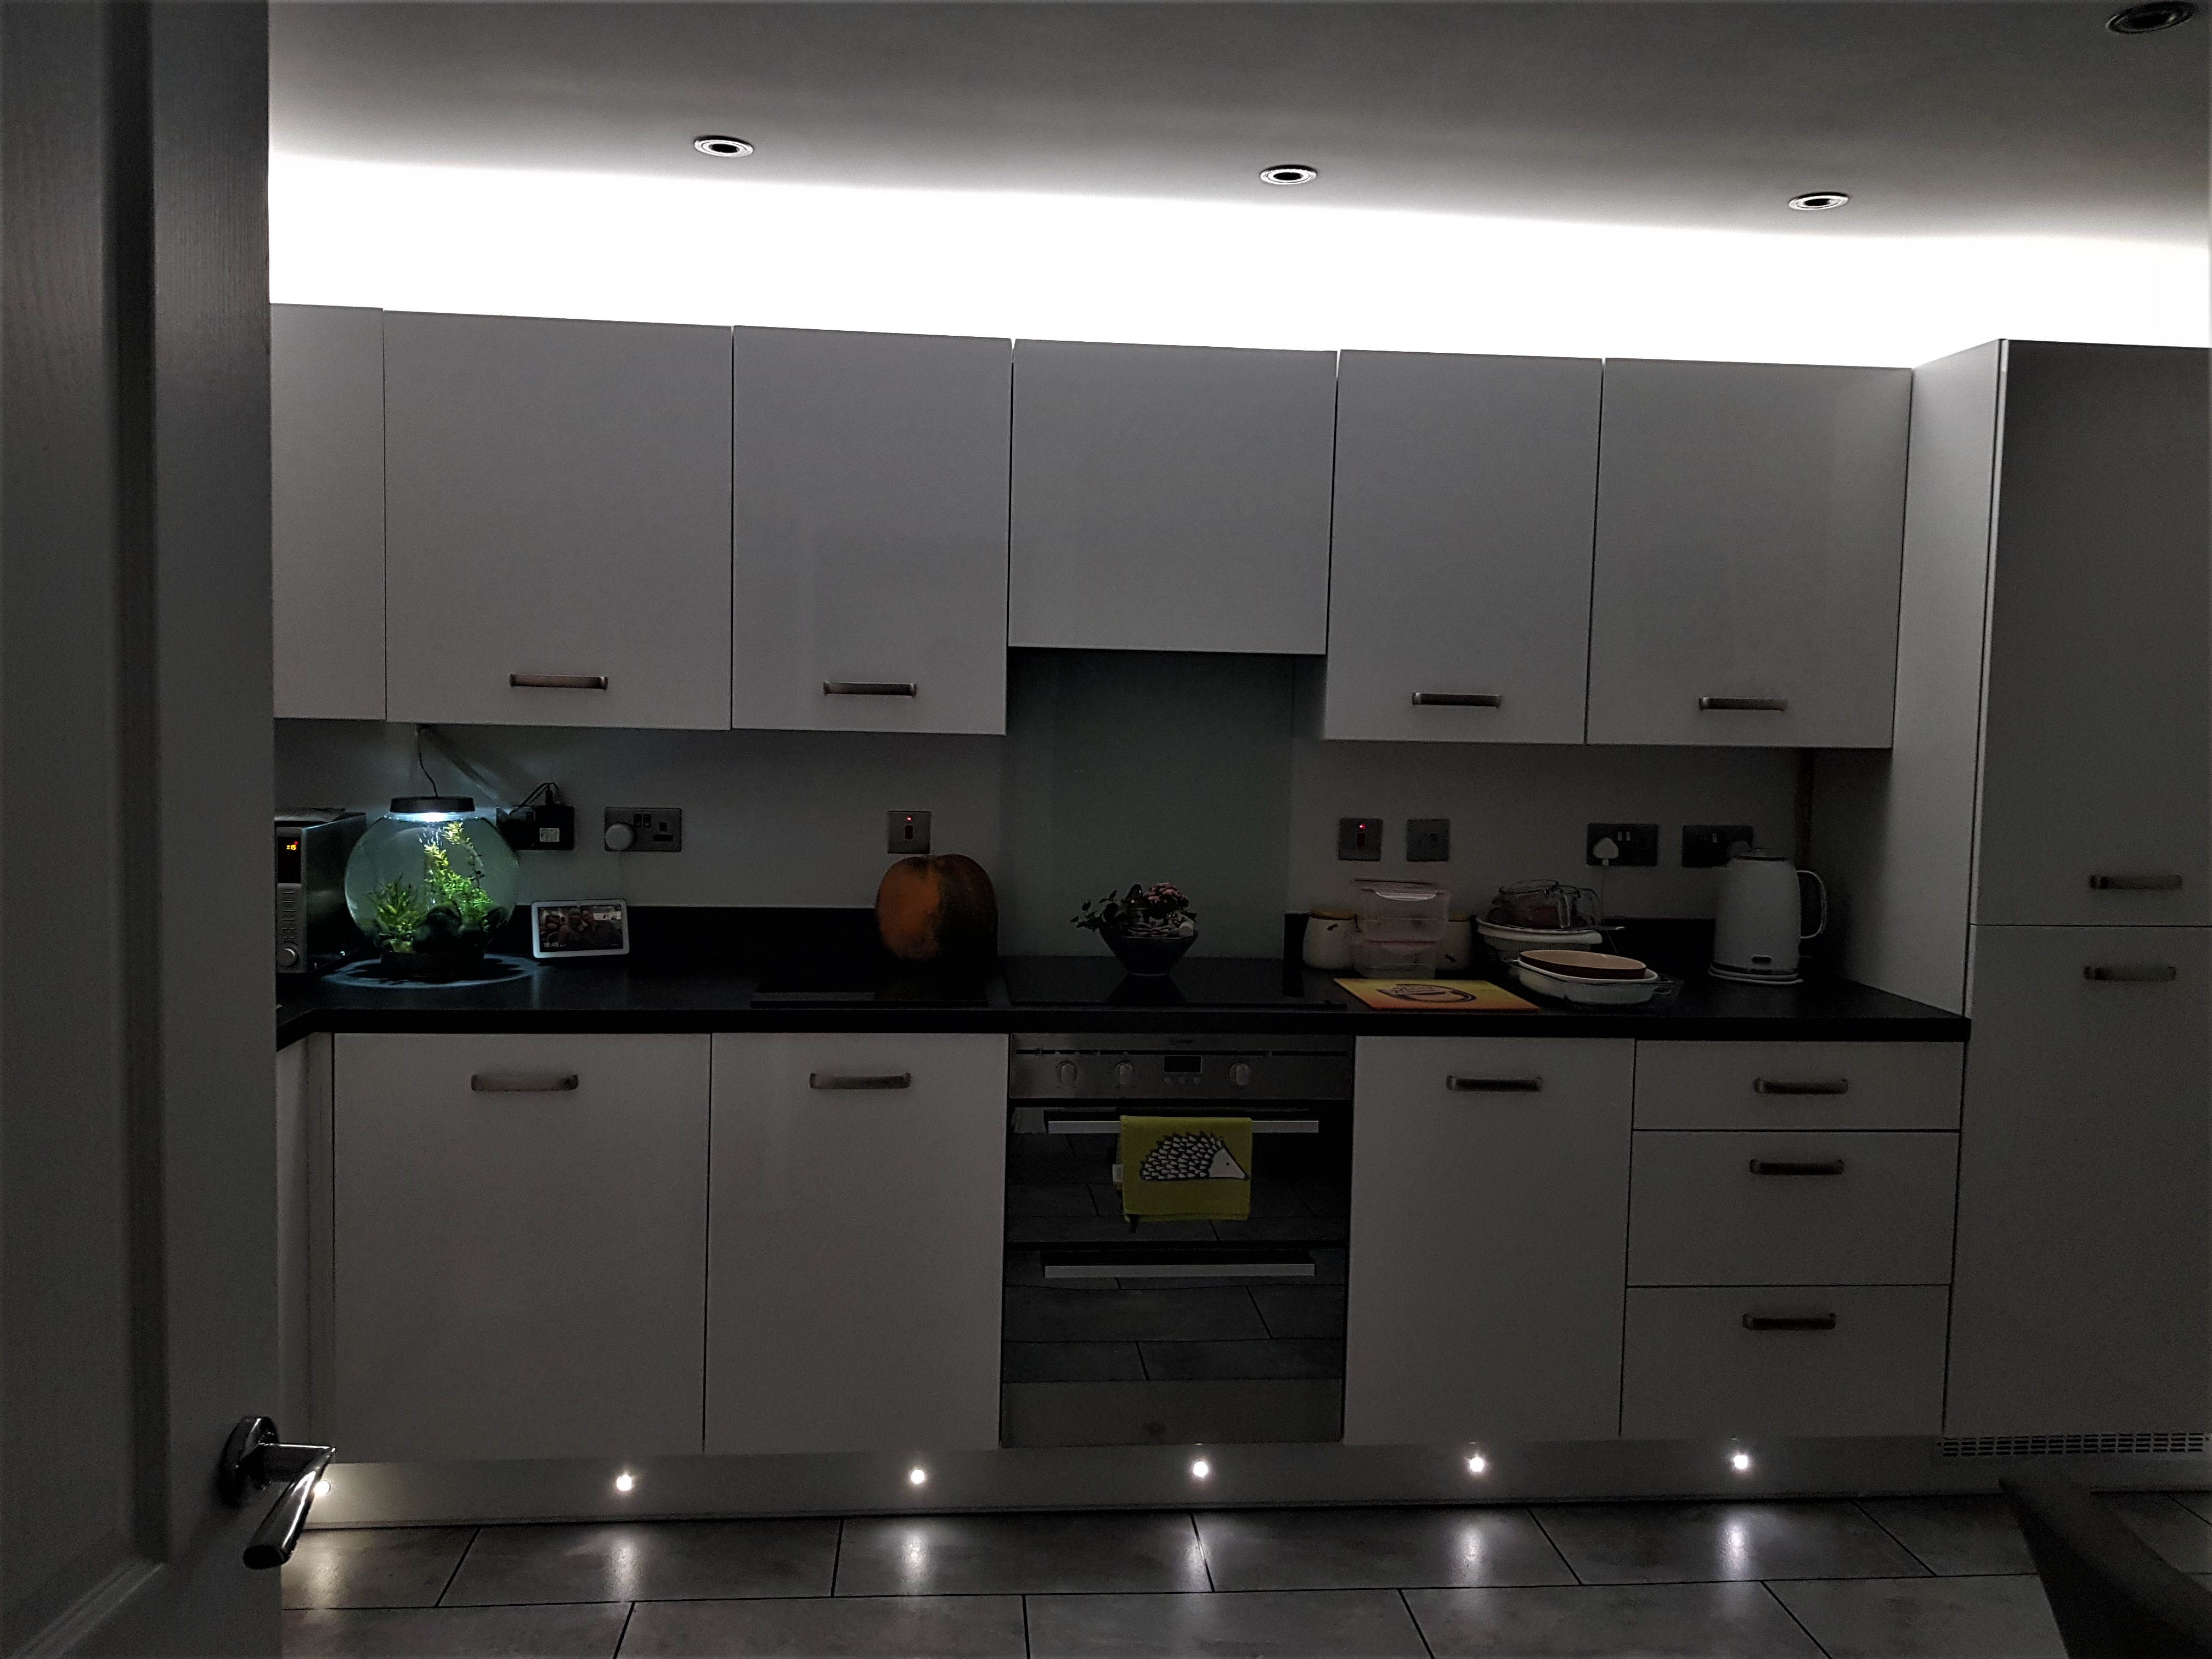 Kitchen Plinth & Cornice lighting Hull